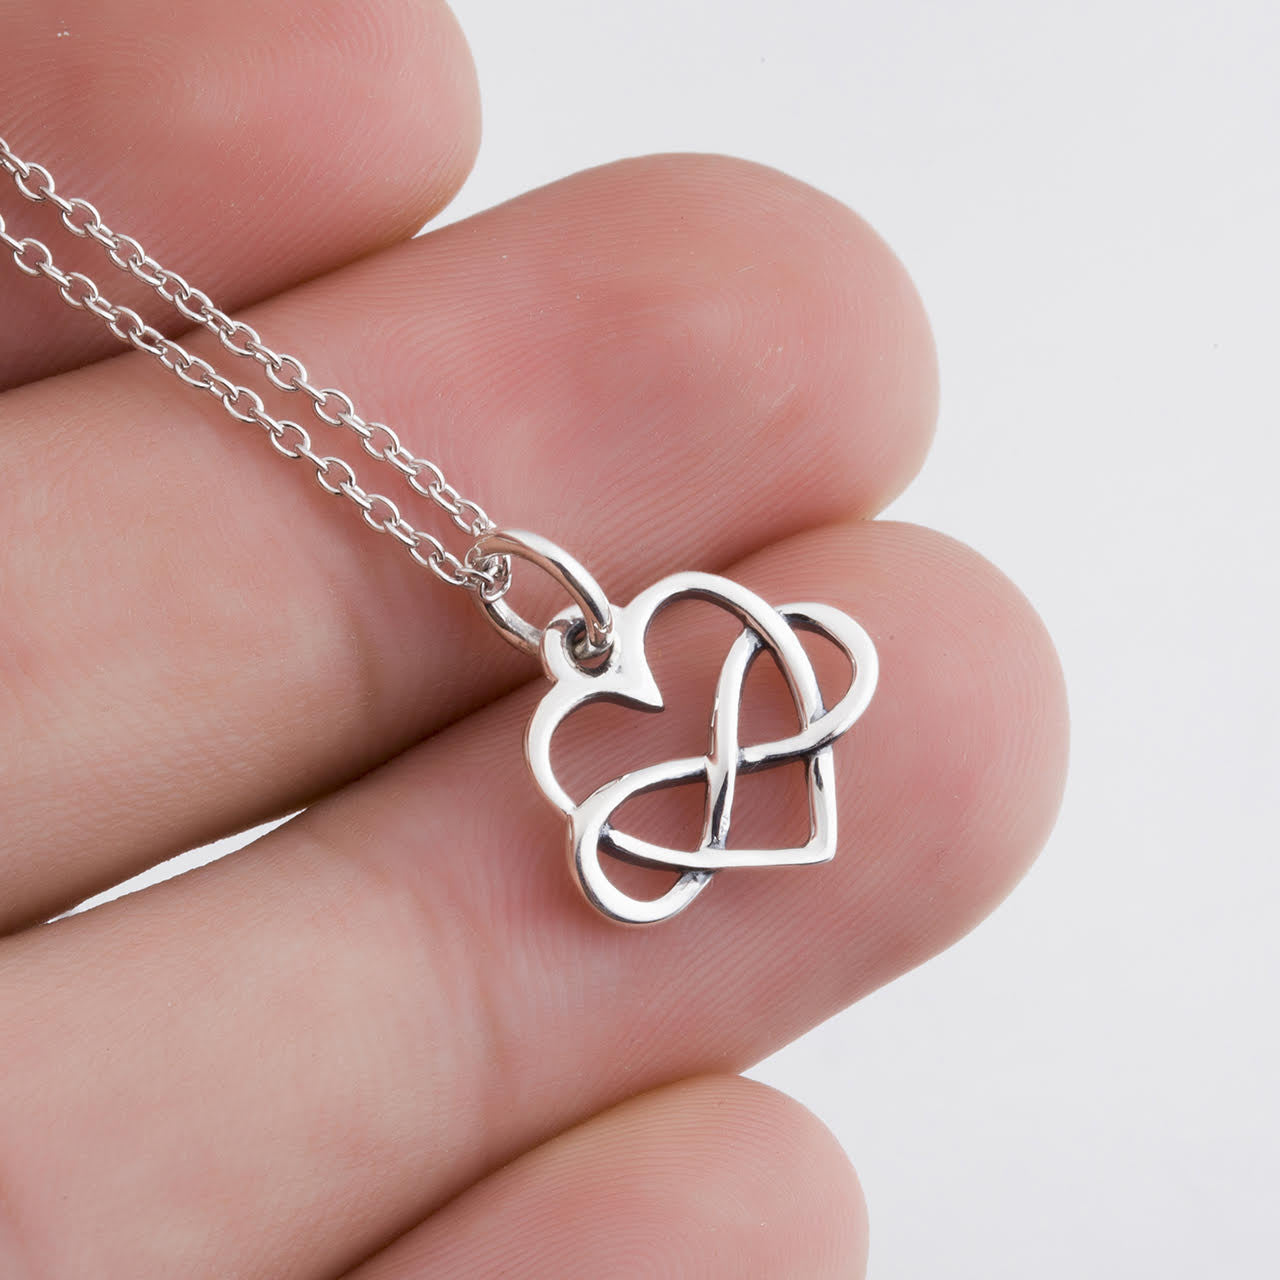 gold id mini infinity necklaces hei sign ed necklace pendant pendants jewelry fmt co in fit tiffany wid cb constrain